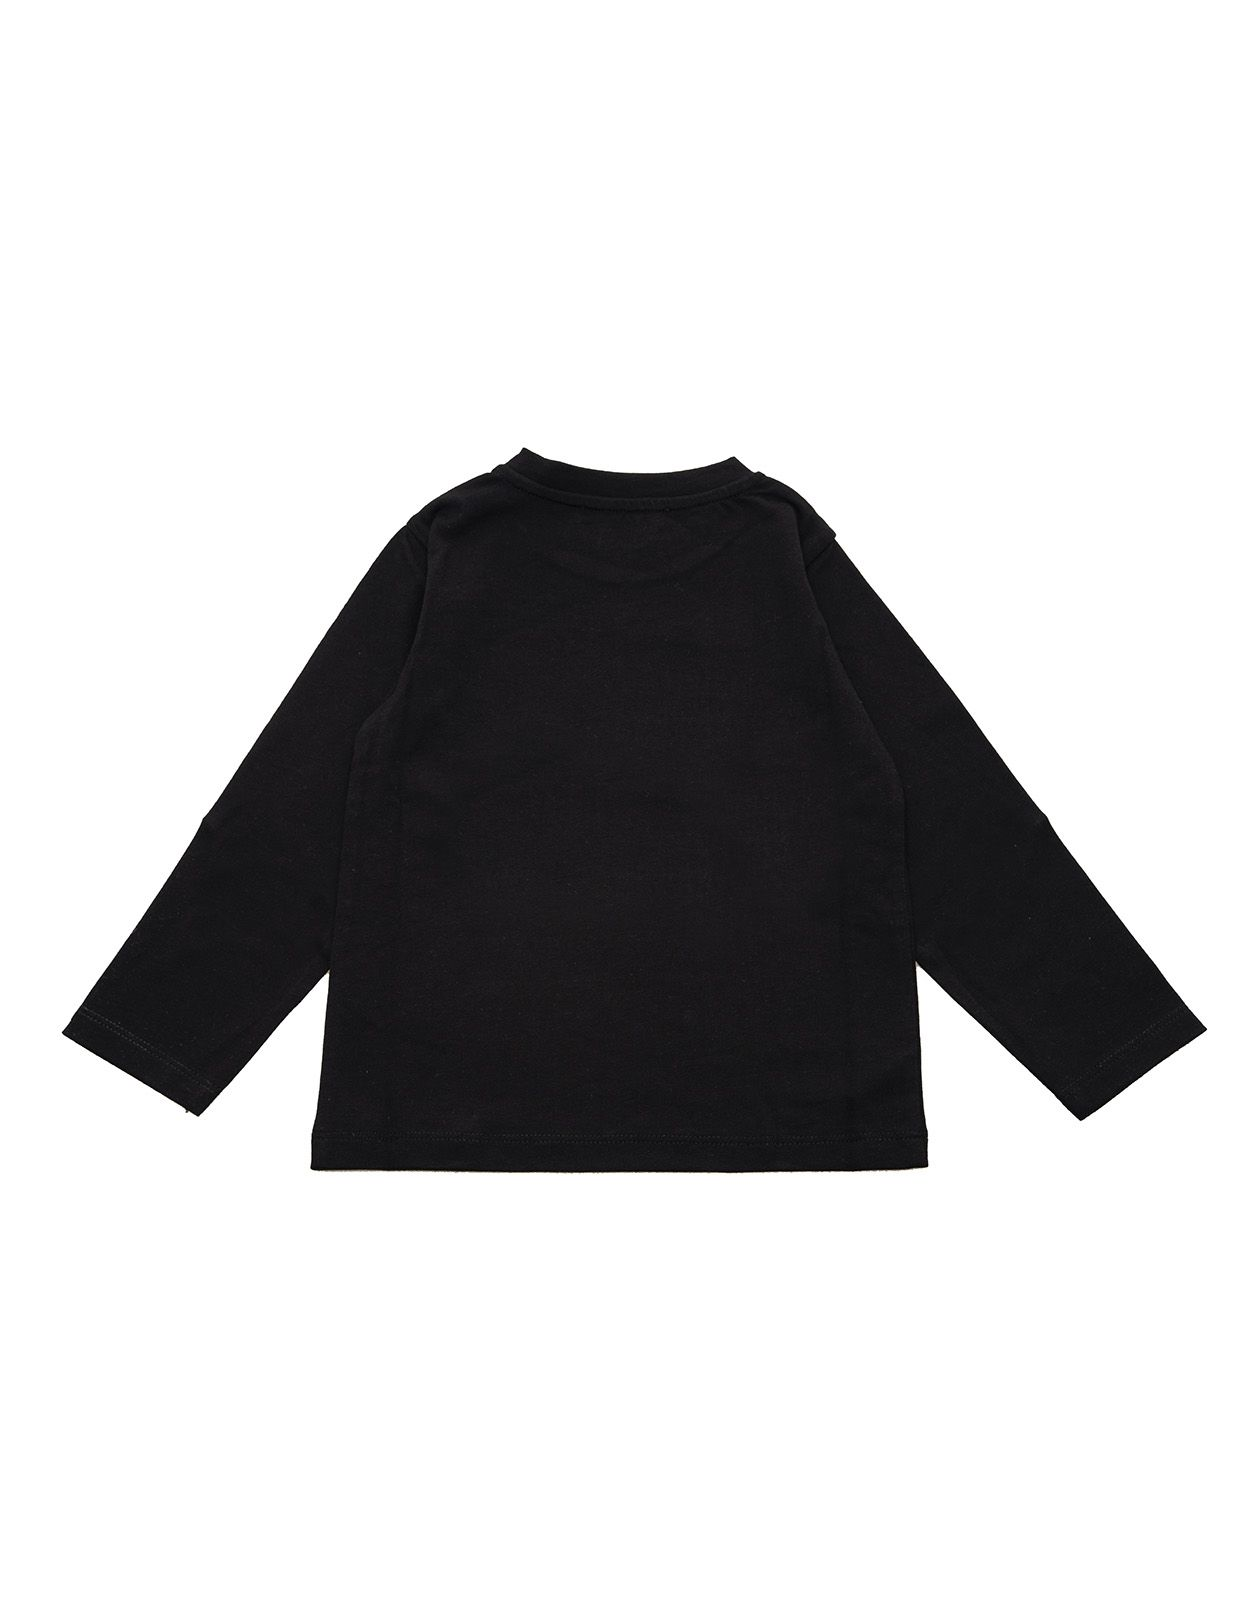 6N8800 NX290 / 930 BLACK / Baby Ls Tee With Metallic Logo